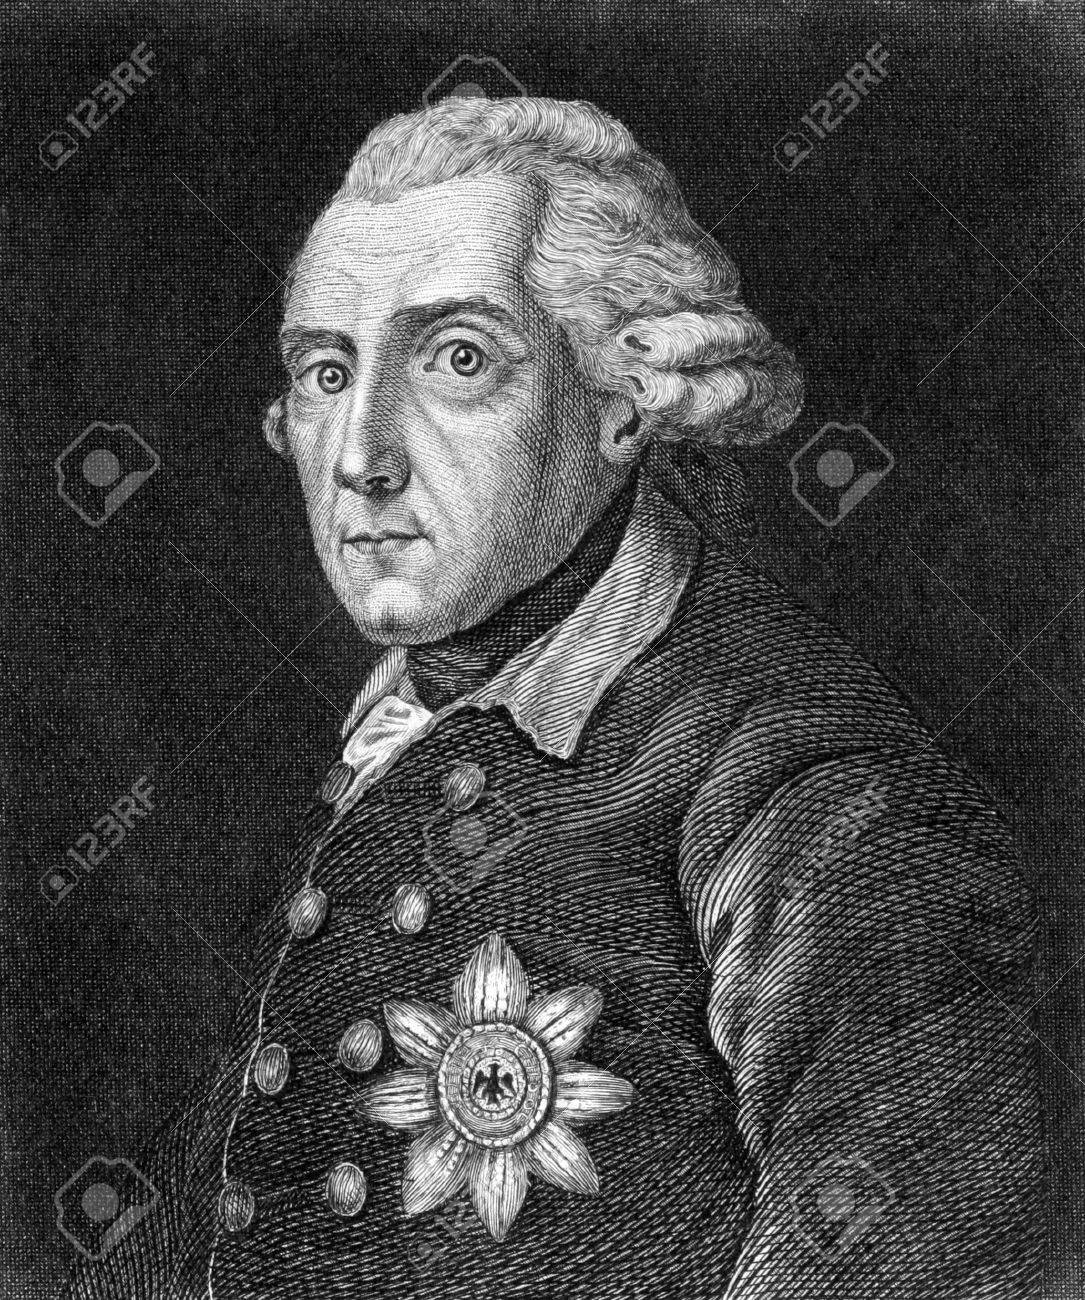 Frederick II (1712-1786) on engraving from 1859. King of Prussia during